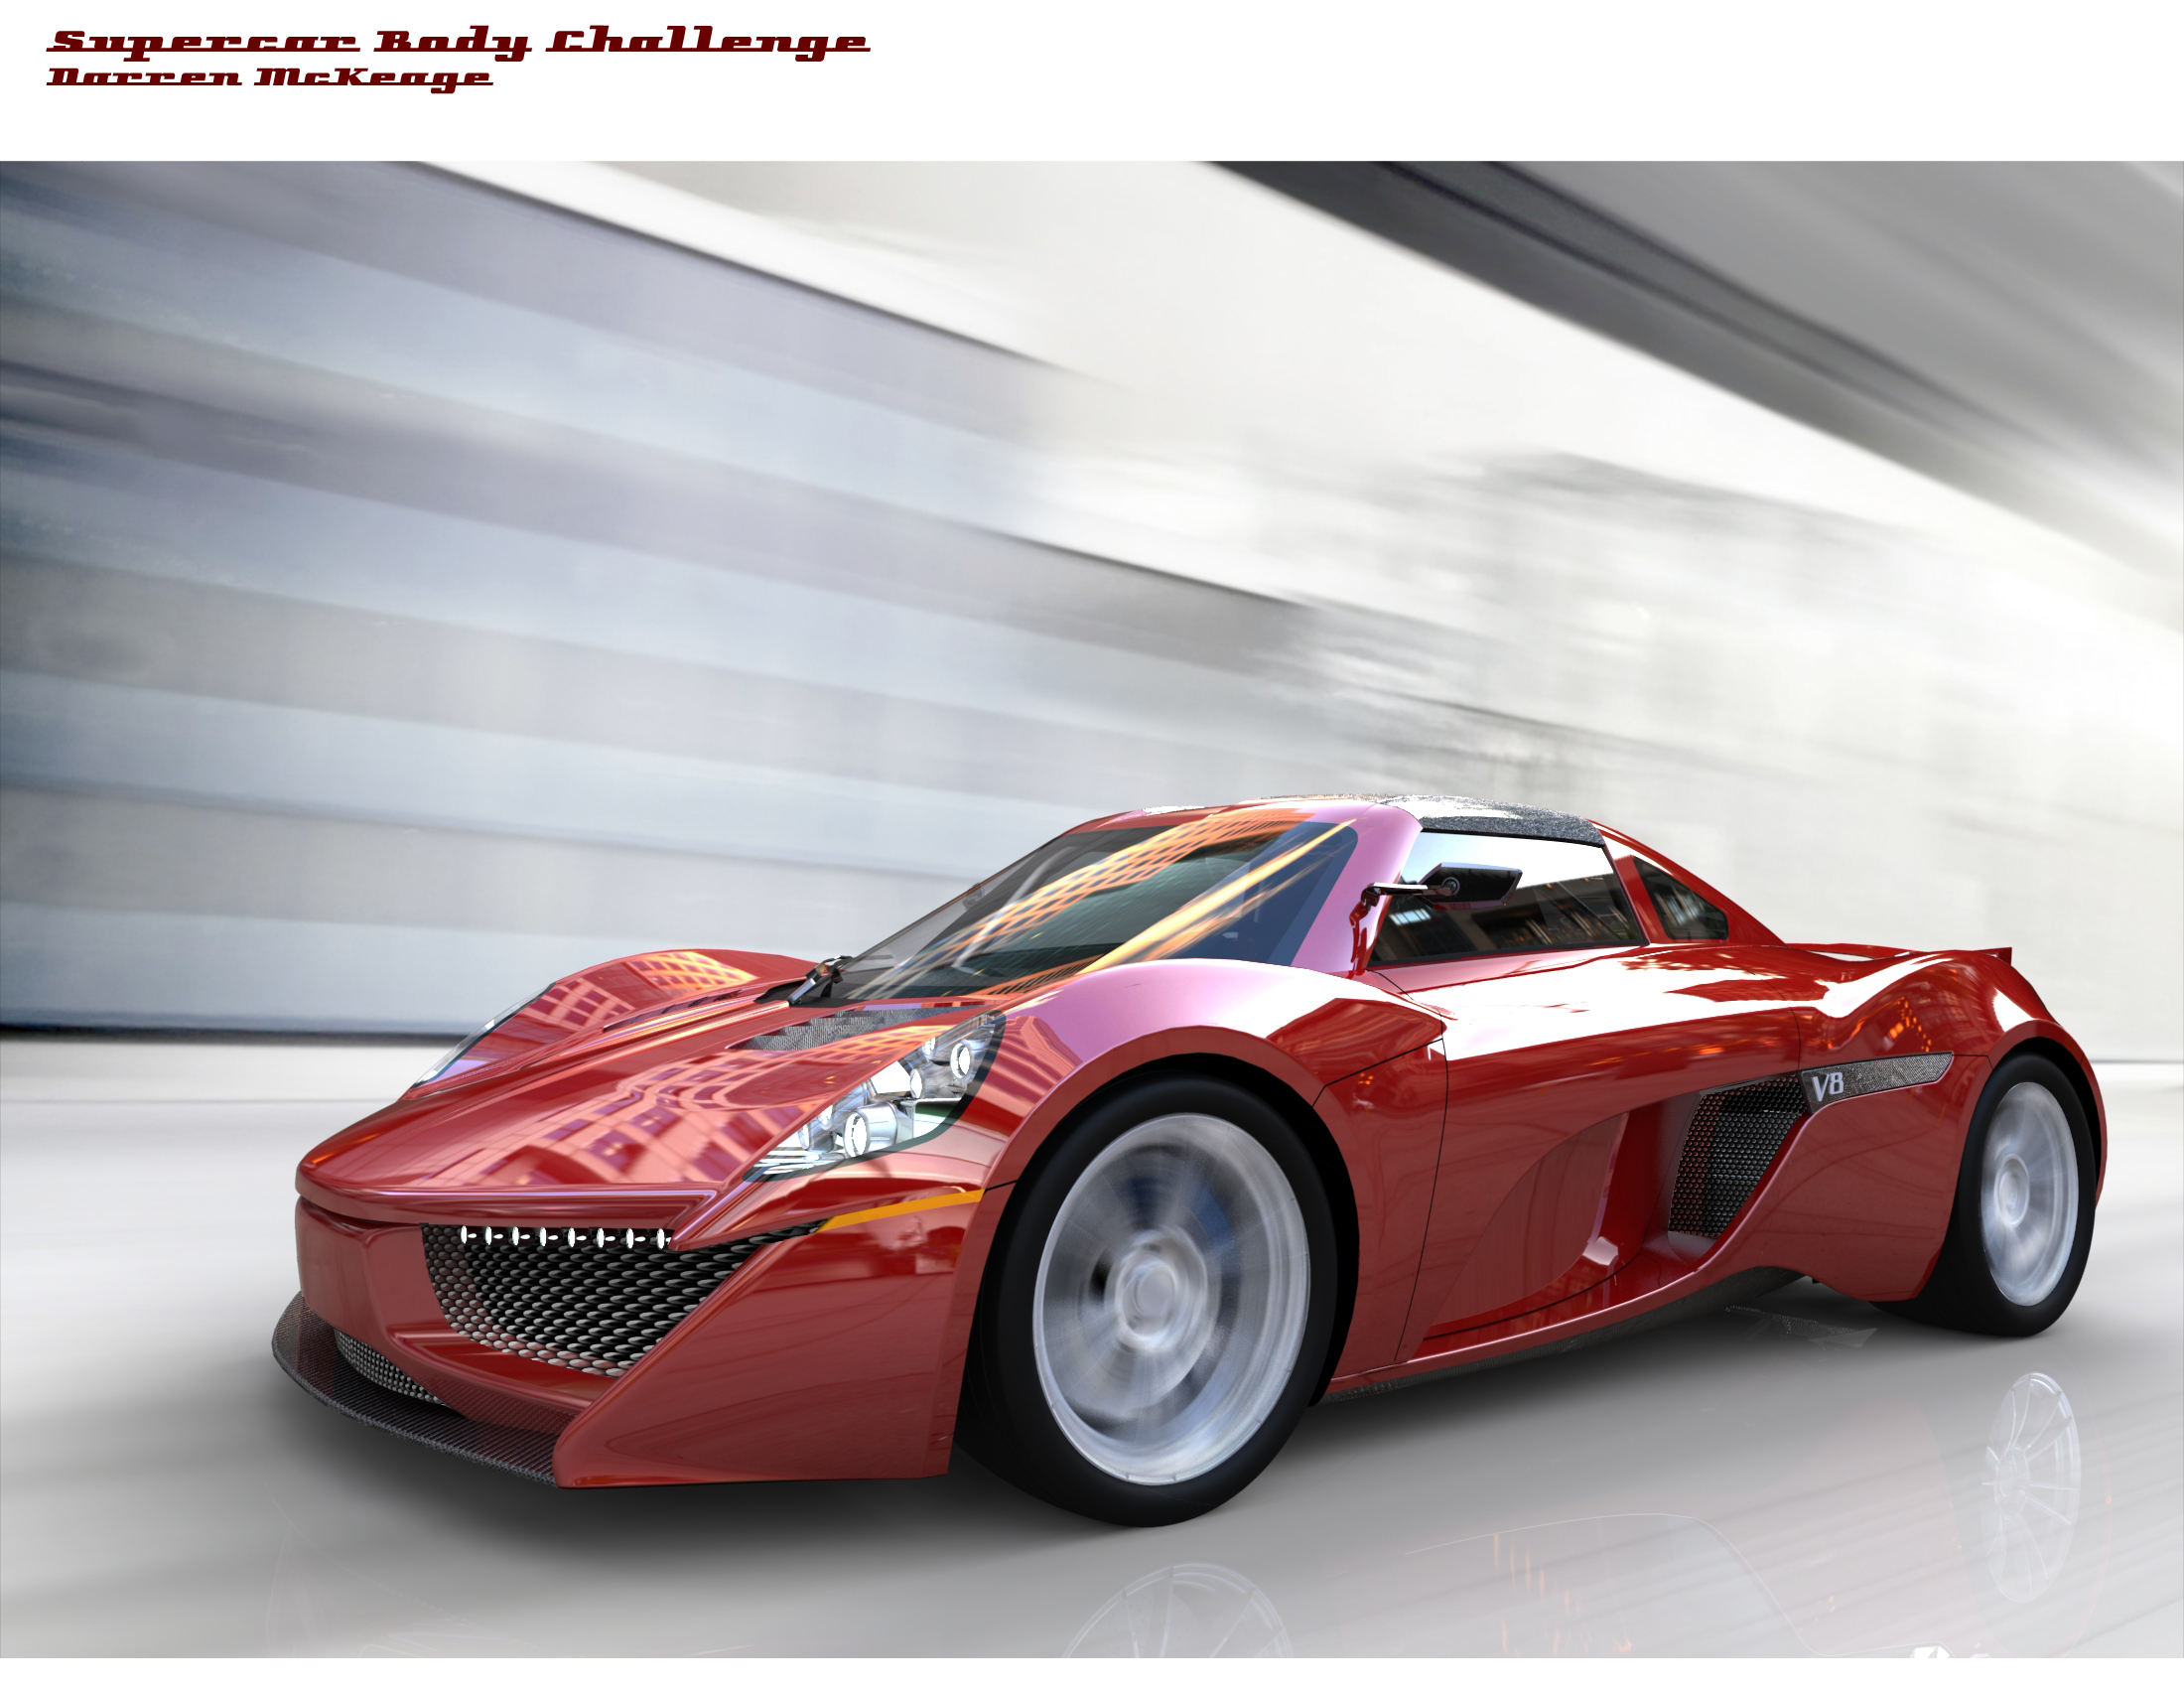 Gm Engined Grabcad Supercar Set For Production In 2013